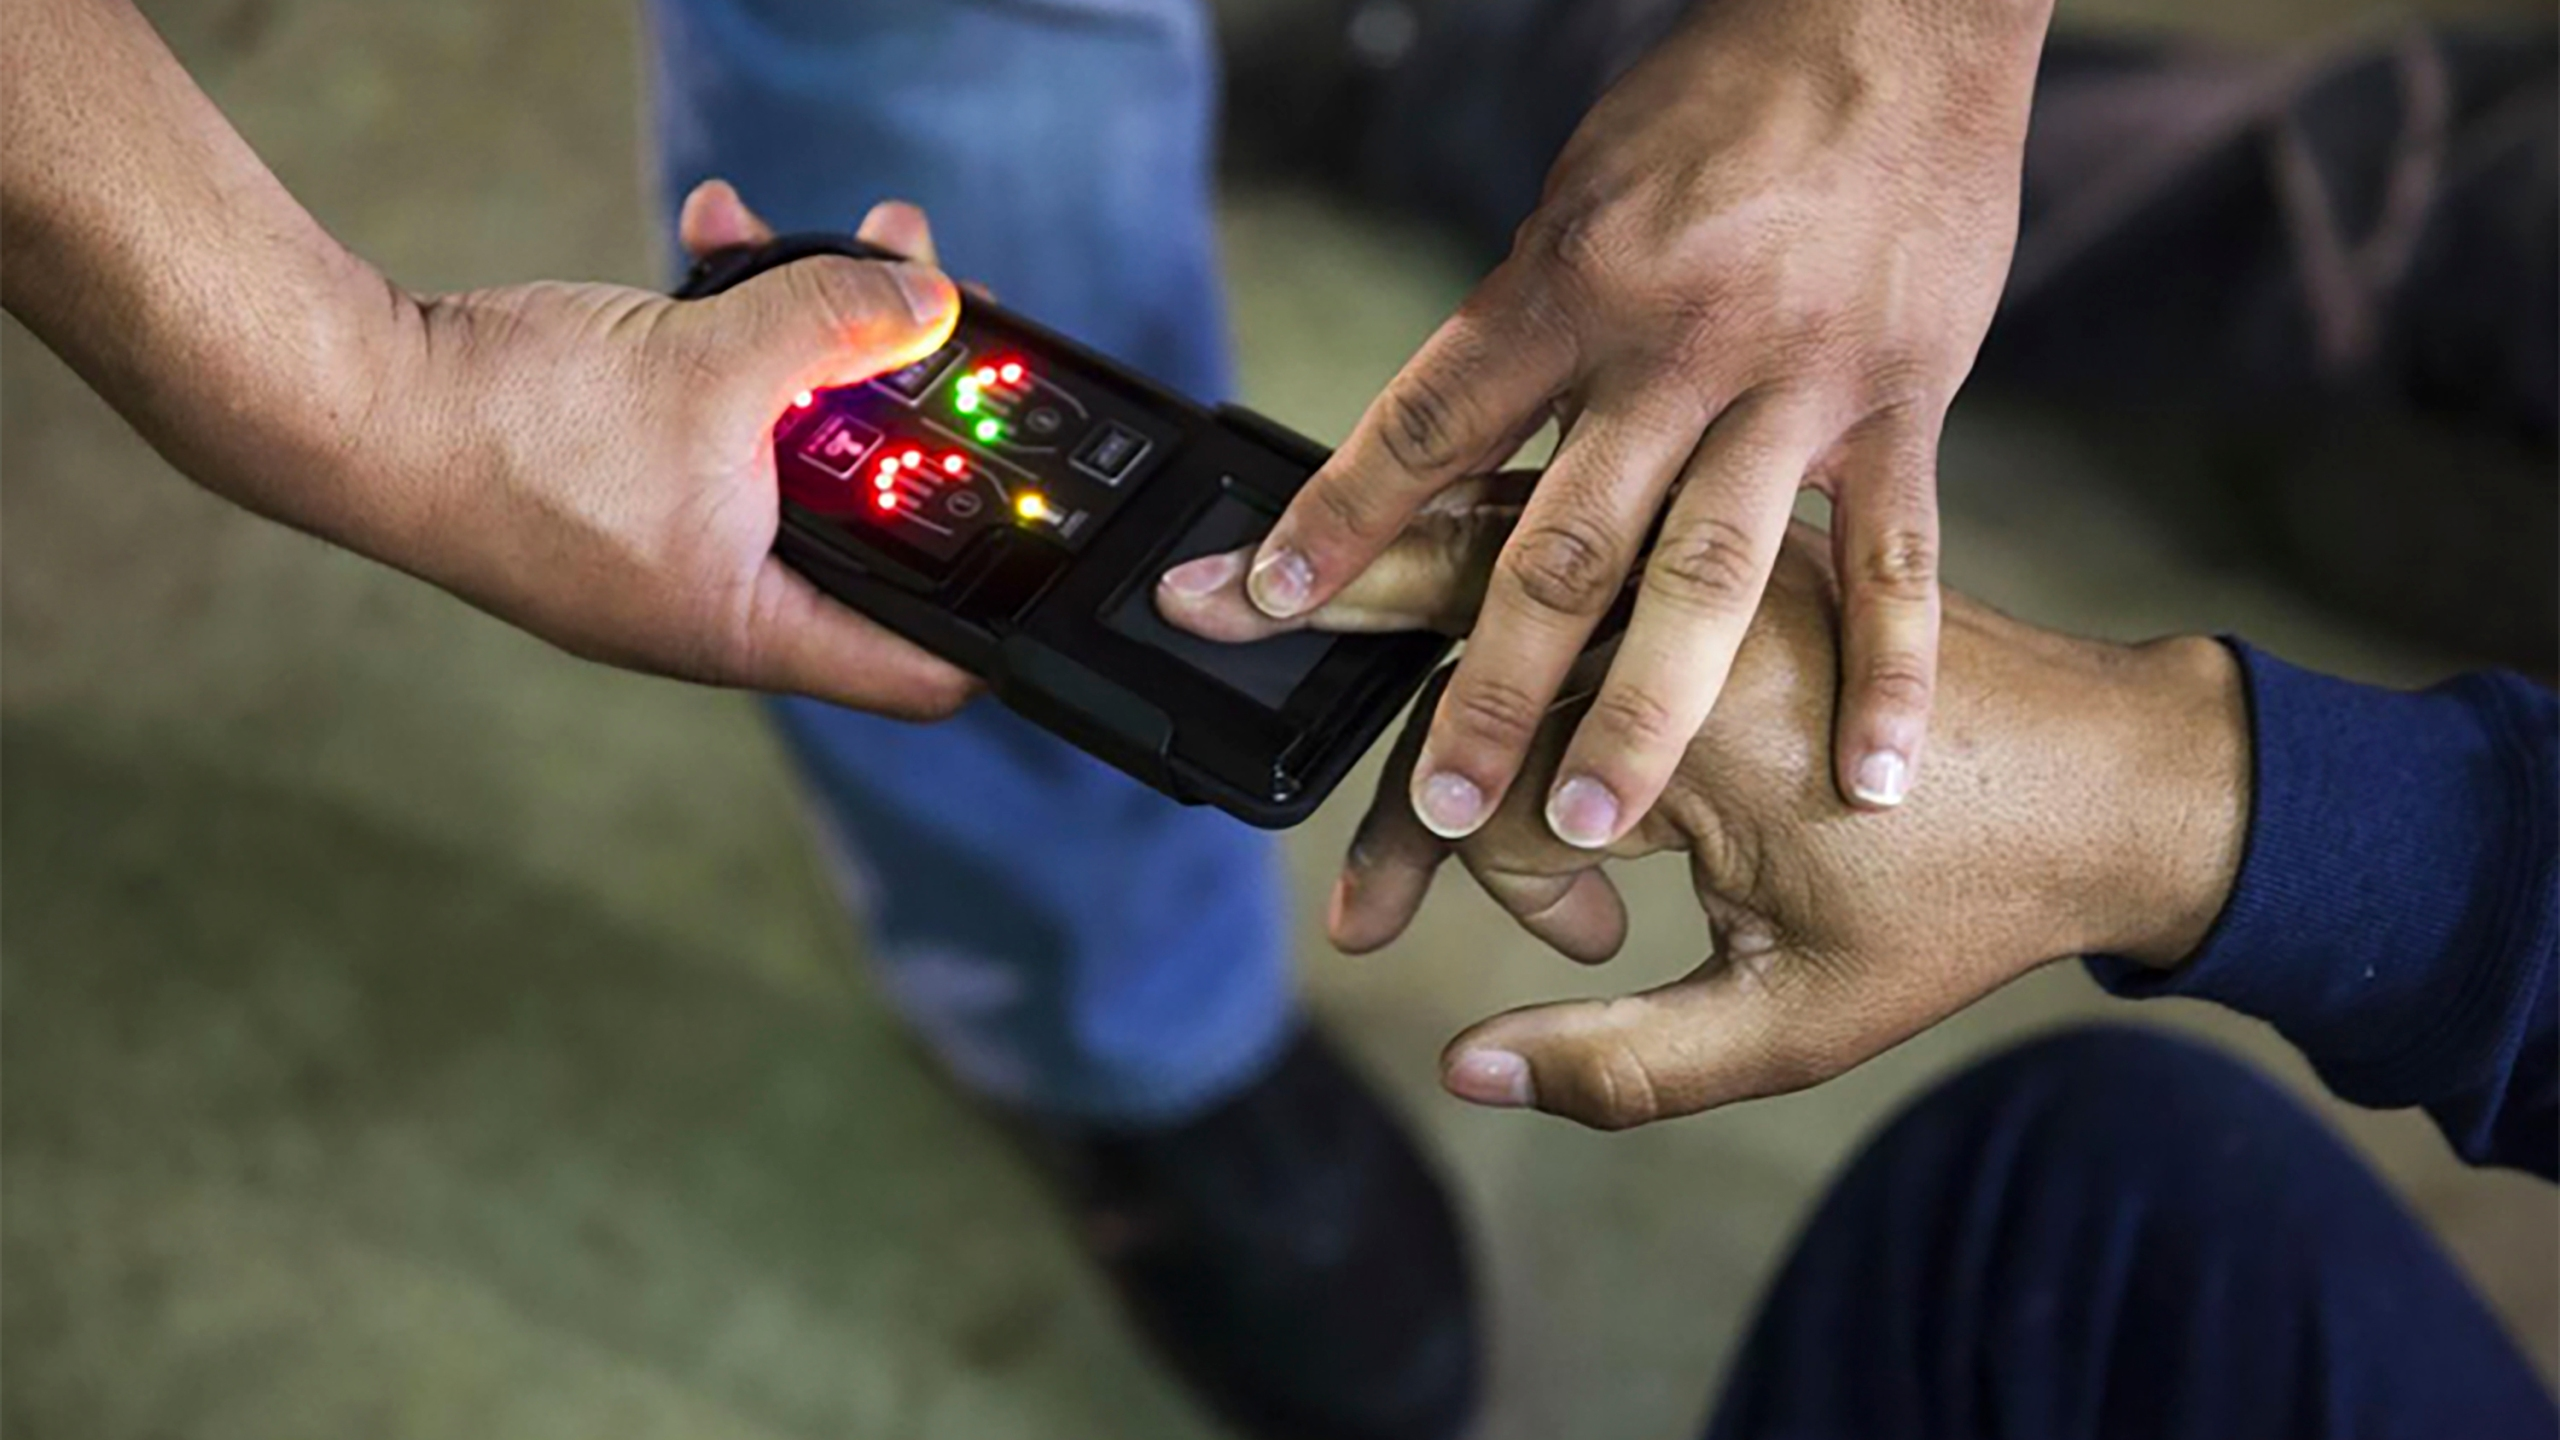 This undated photo obtained from Immigration and Customs Enforcement (ICE) shows a NeoScan 45 fingerprint scanner. The device, paired with an app known as EDDIE, is used by ICE to run remote ID checks.(Immigration and Customs Enforcement via AP)